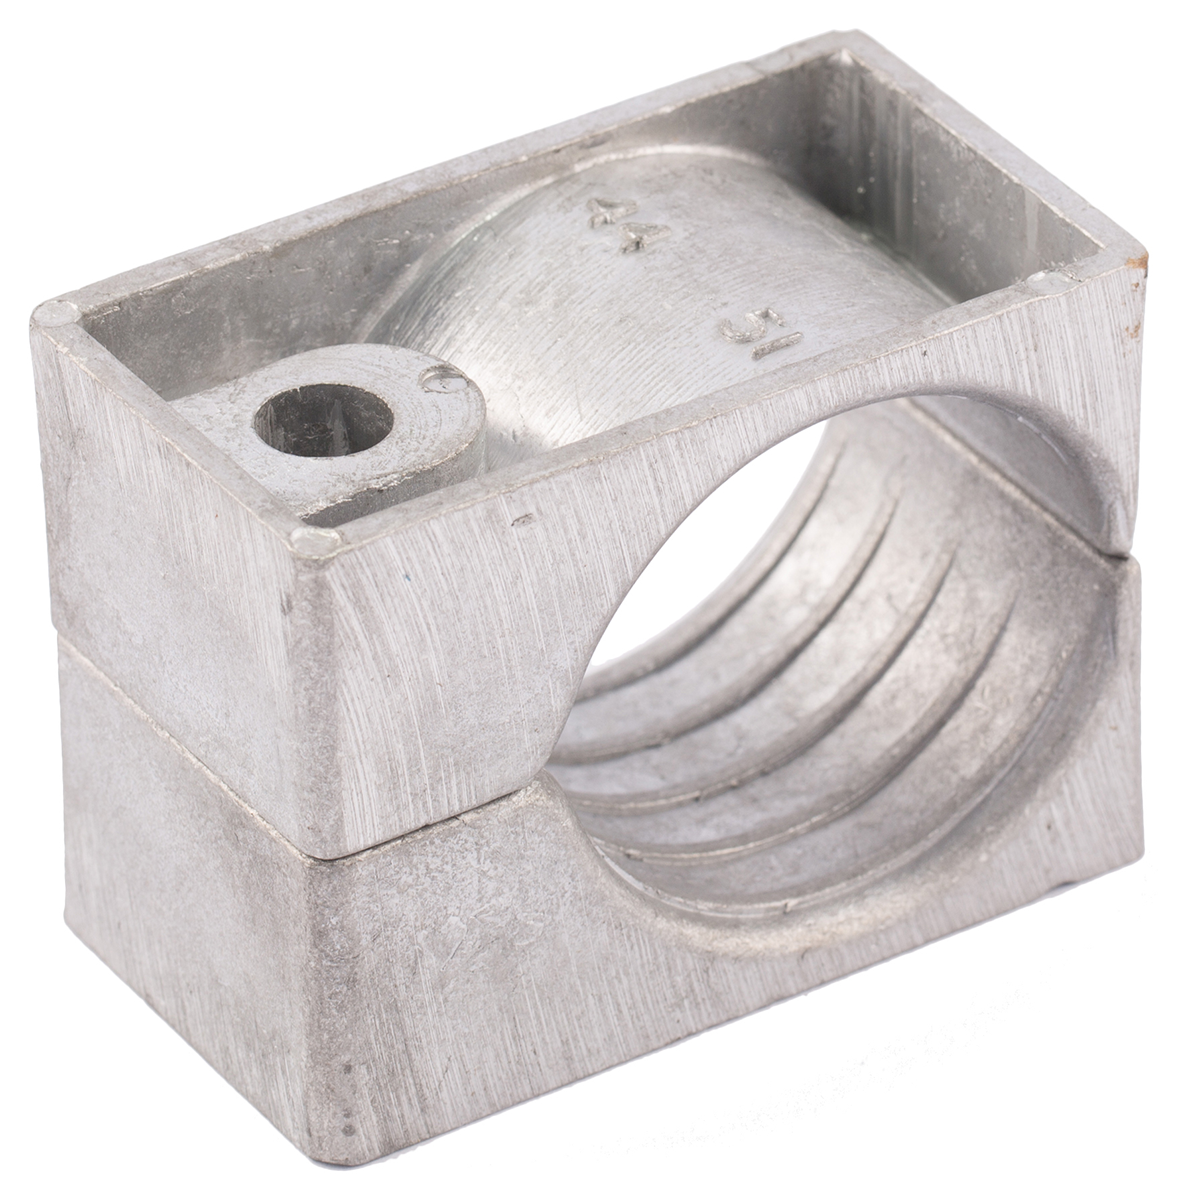 SWA ACC44-51 Claw Cleat 44-51mm Alum